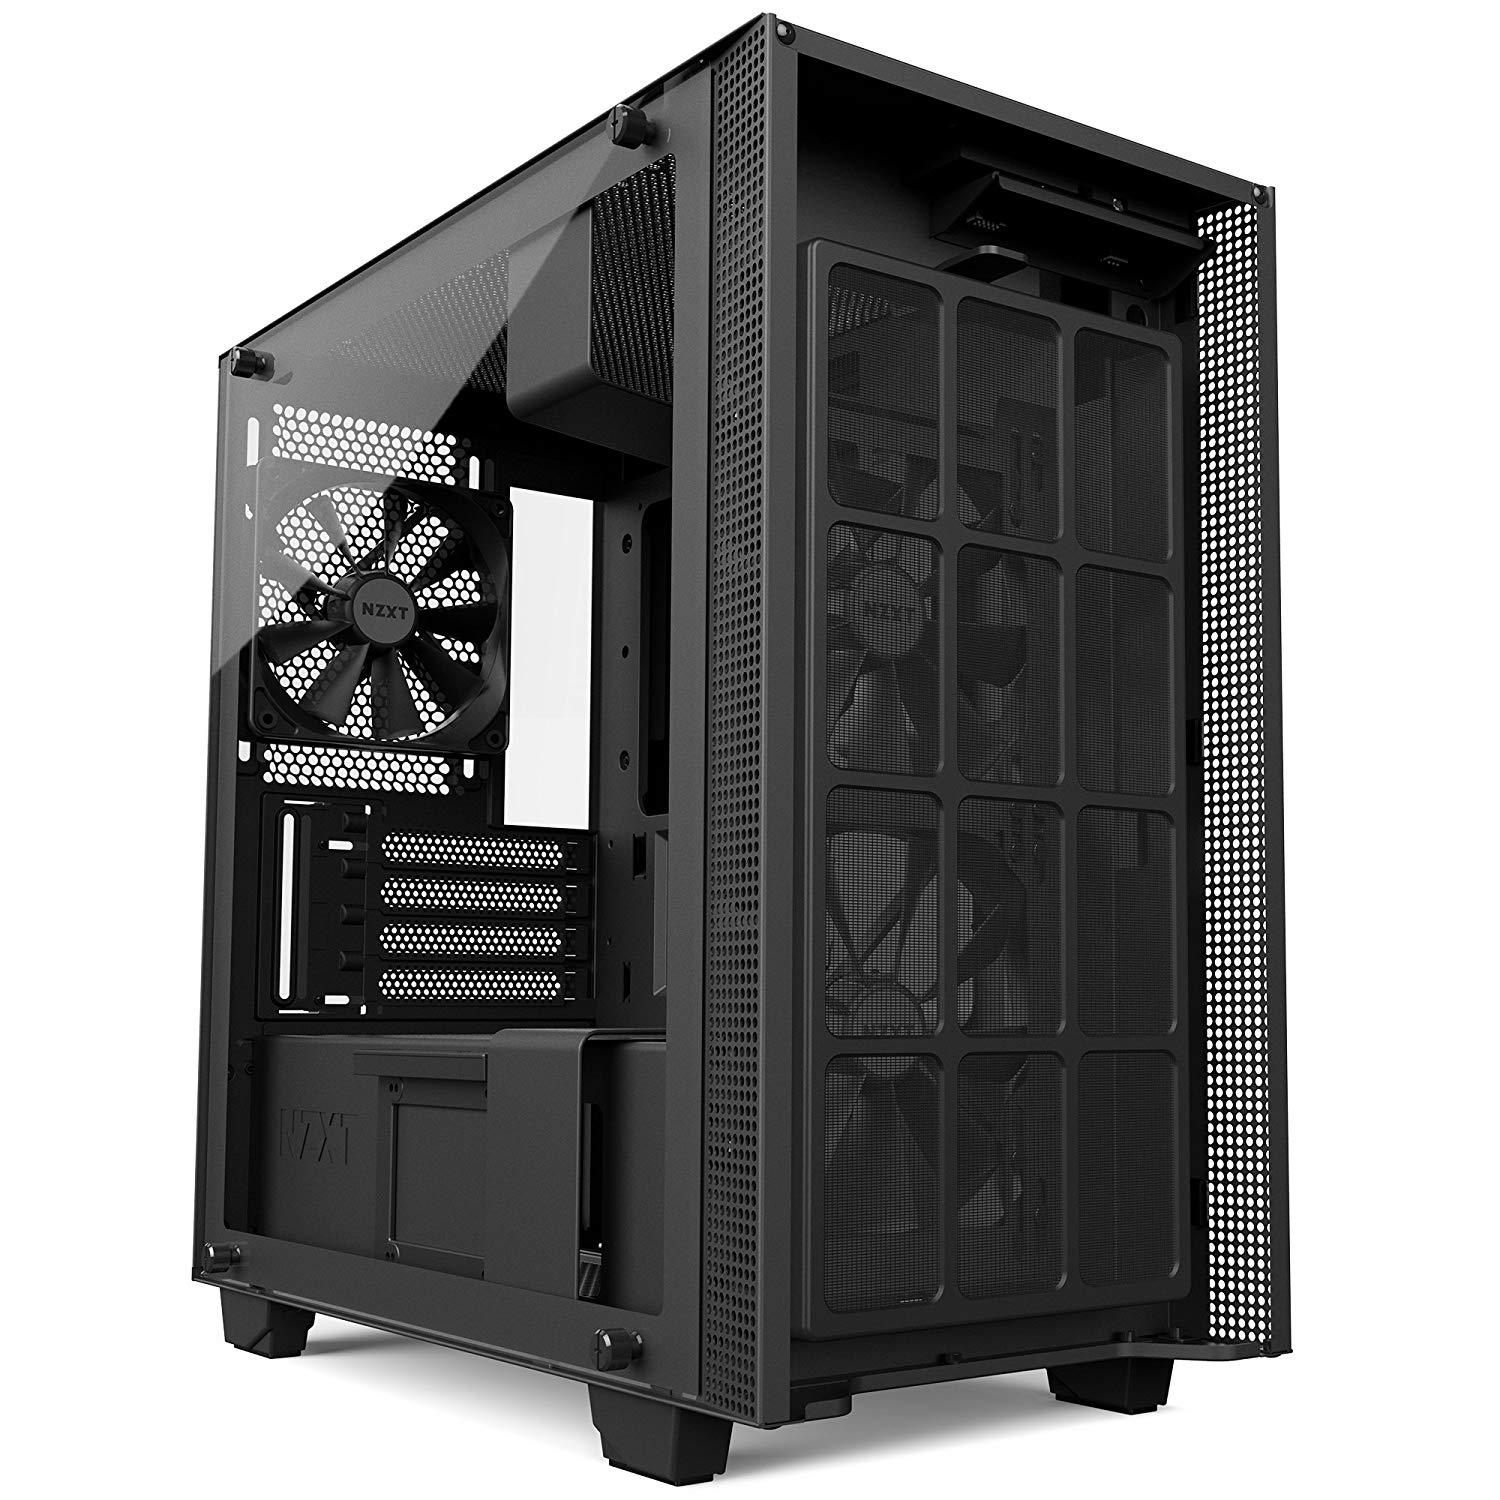 NZXT H400 Micro ATX Mini Tower Case - Black